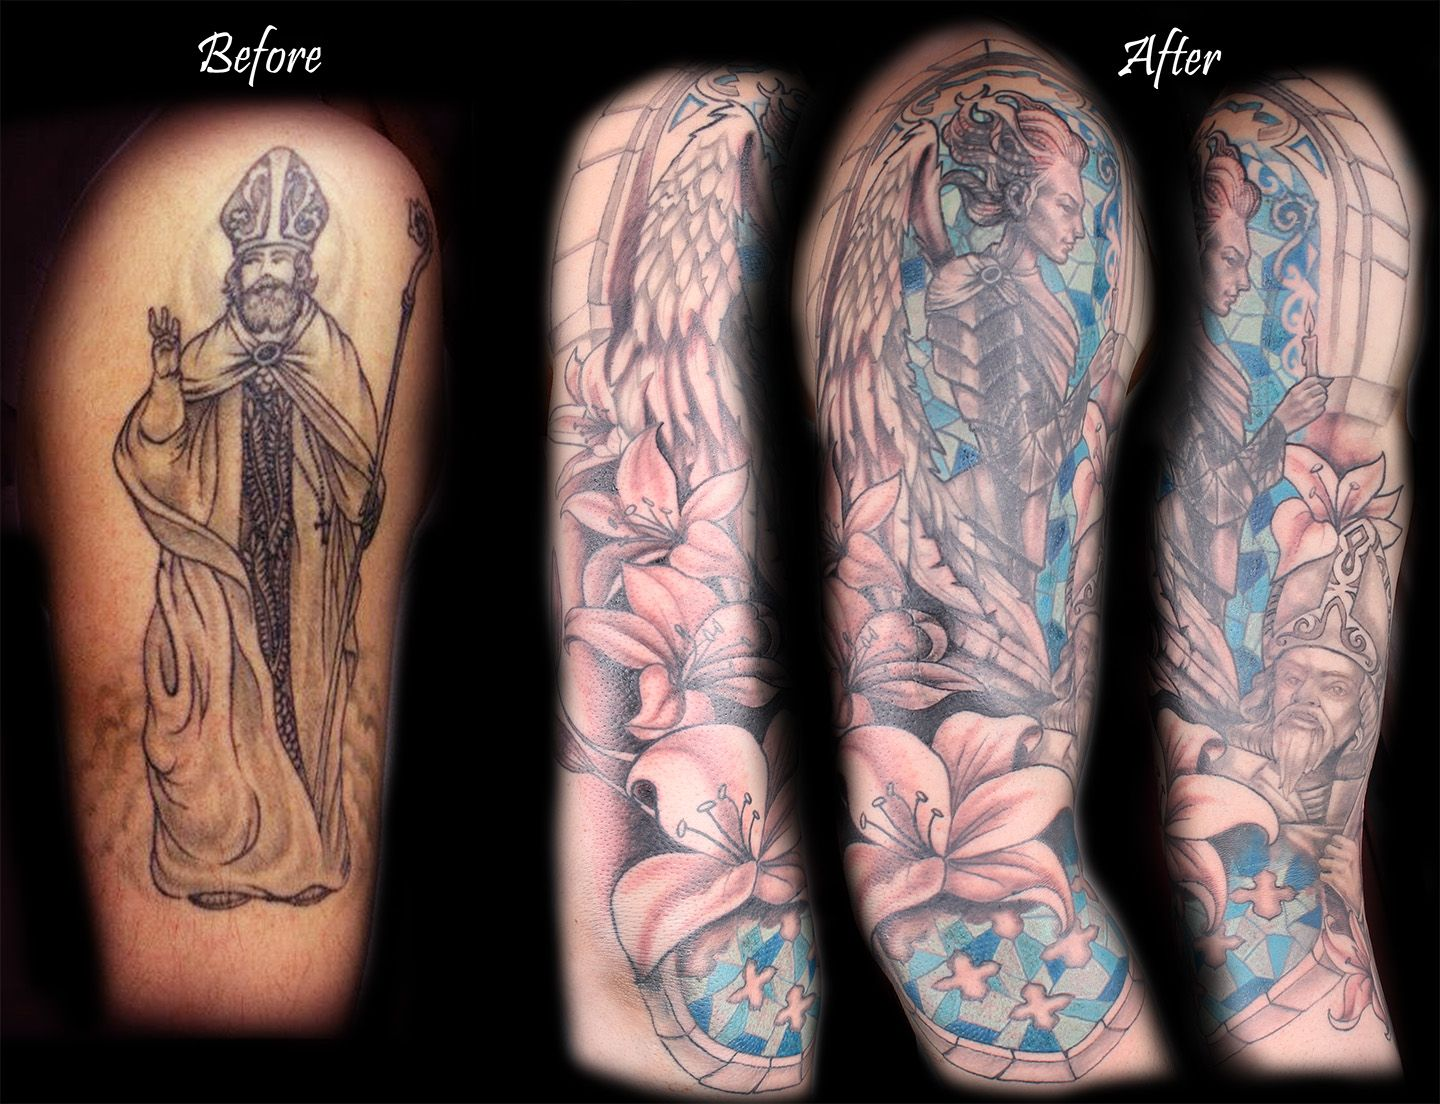 Before And After Tattoo Cover Up Tattoo From Black And White To Vivid Color Coverup Tattoo Bodylanguagetattoo Cover Up Tattoos Cover Tattoo Tattoos